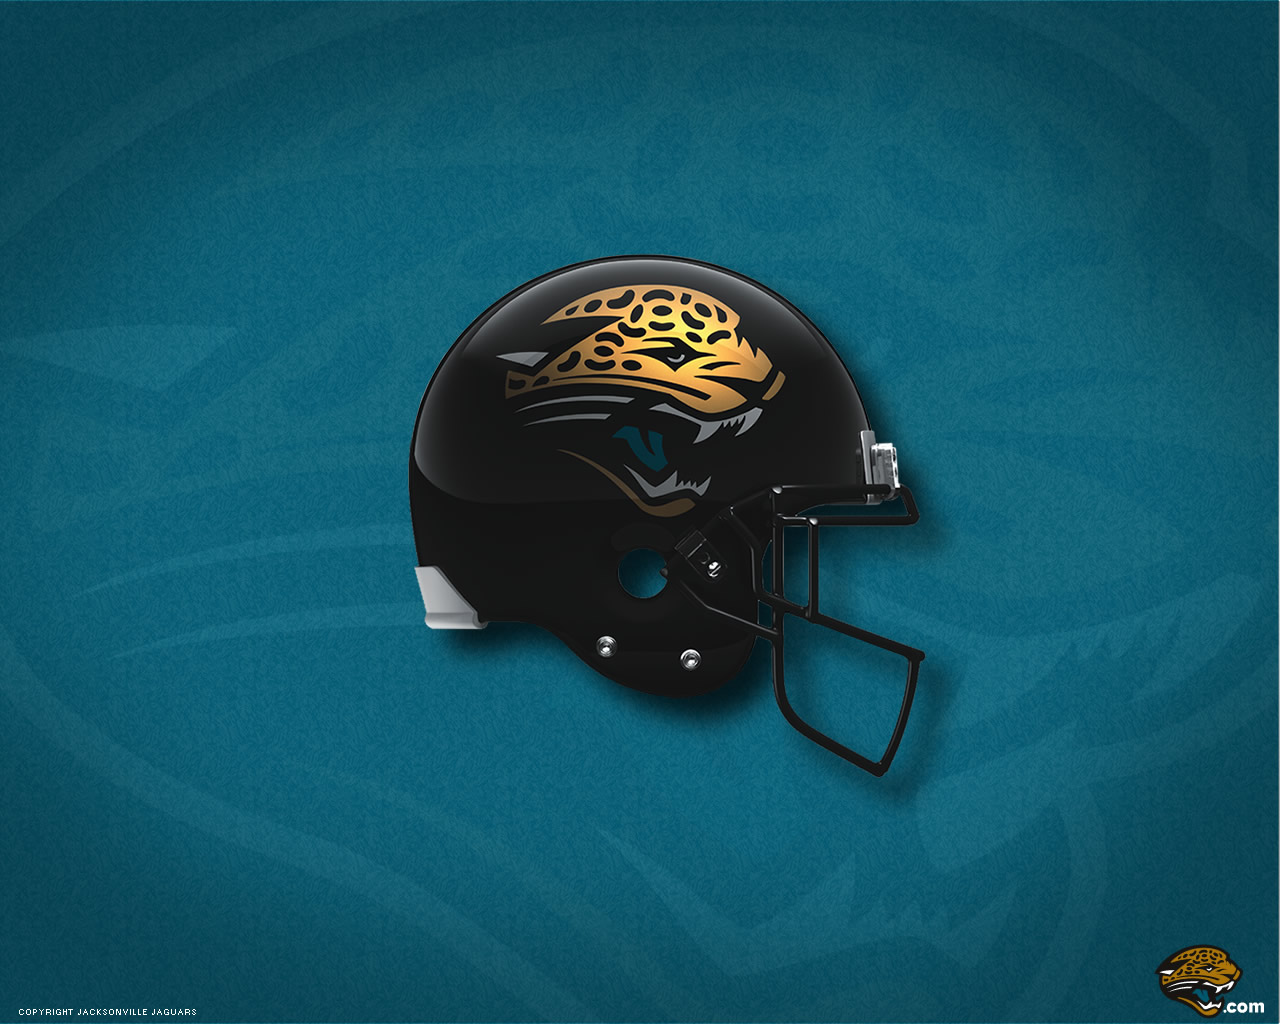 backgrounds all related wallpapers nfl jacksonville jaguars logo 1280x1024